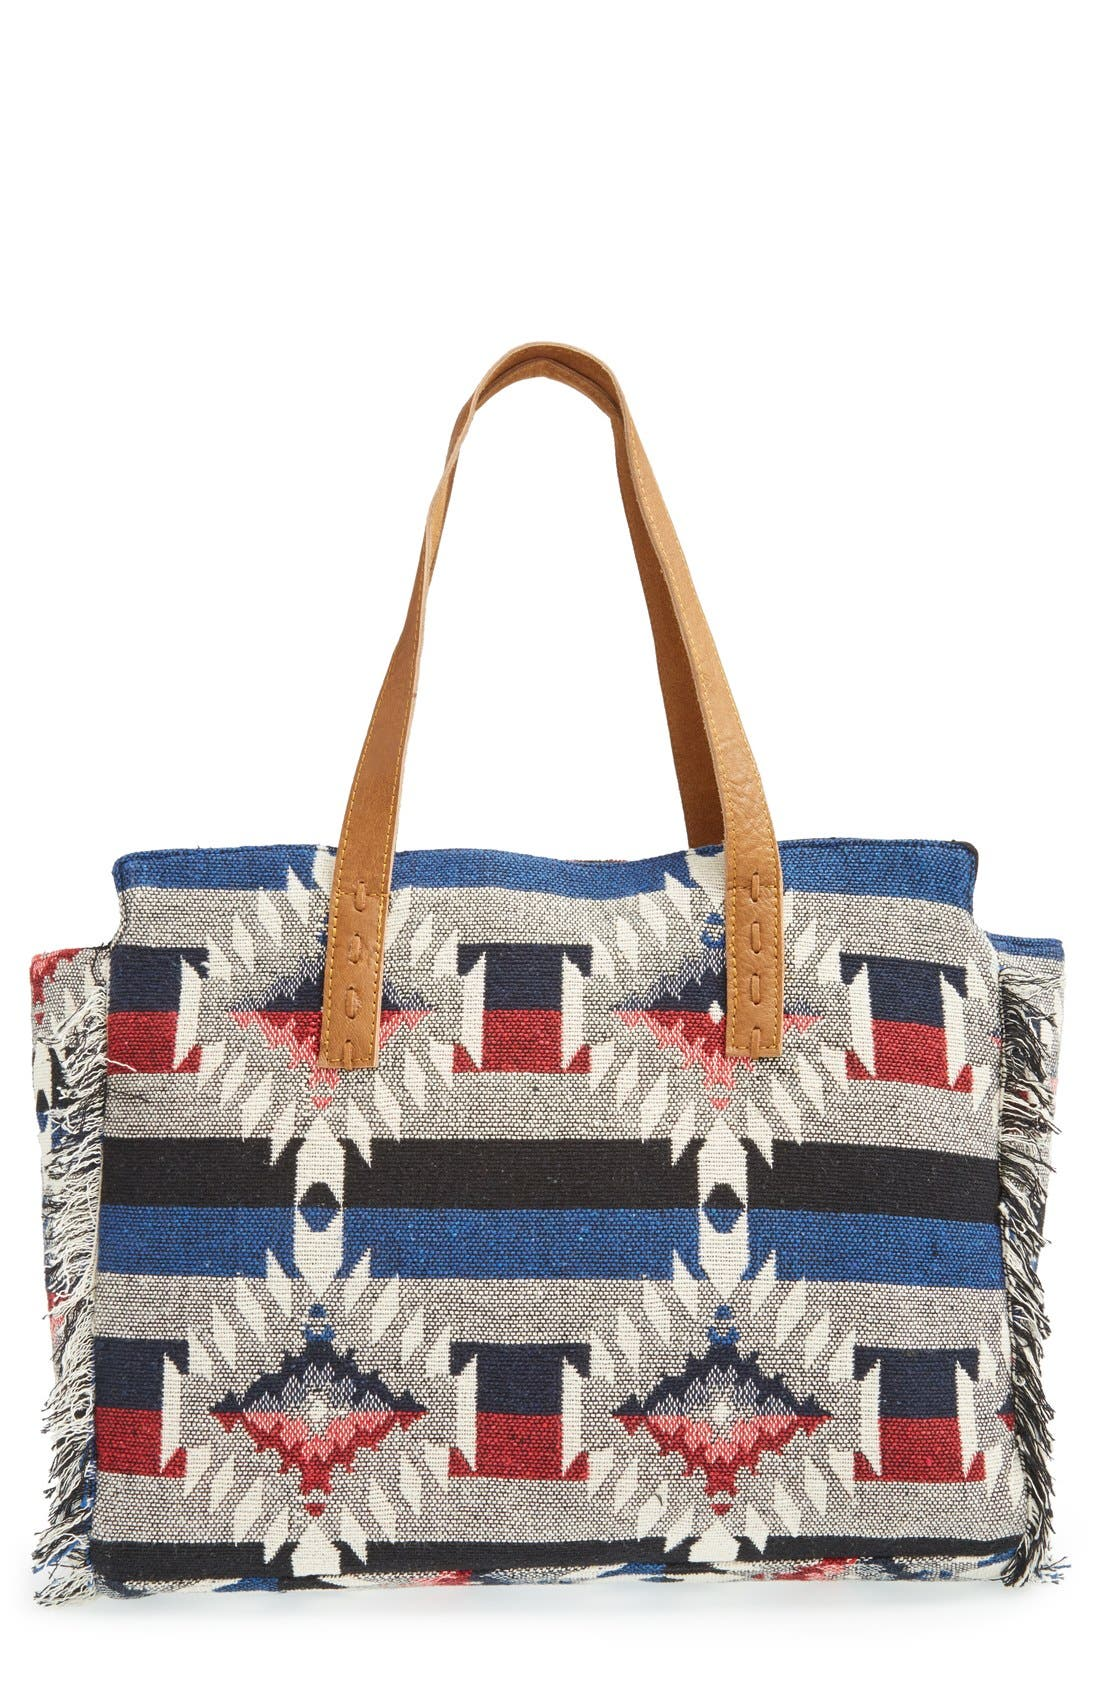 Main Image - Sole Society Woven Geometric Tote